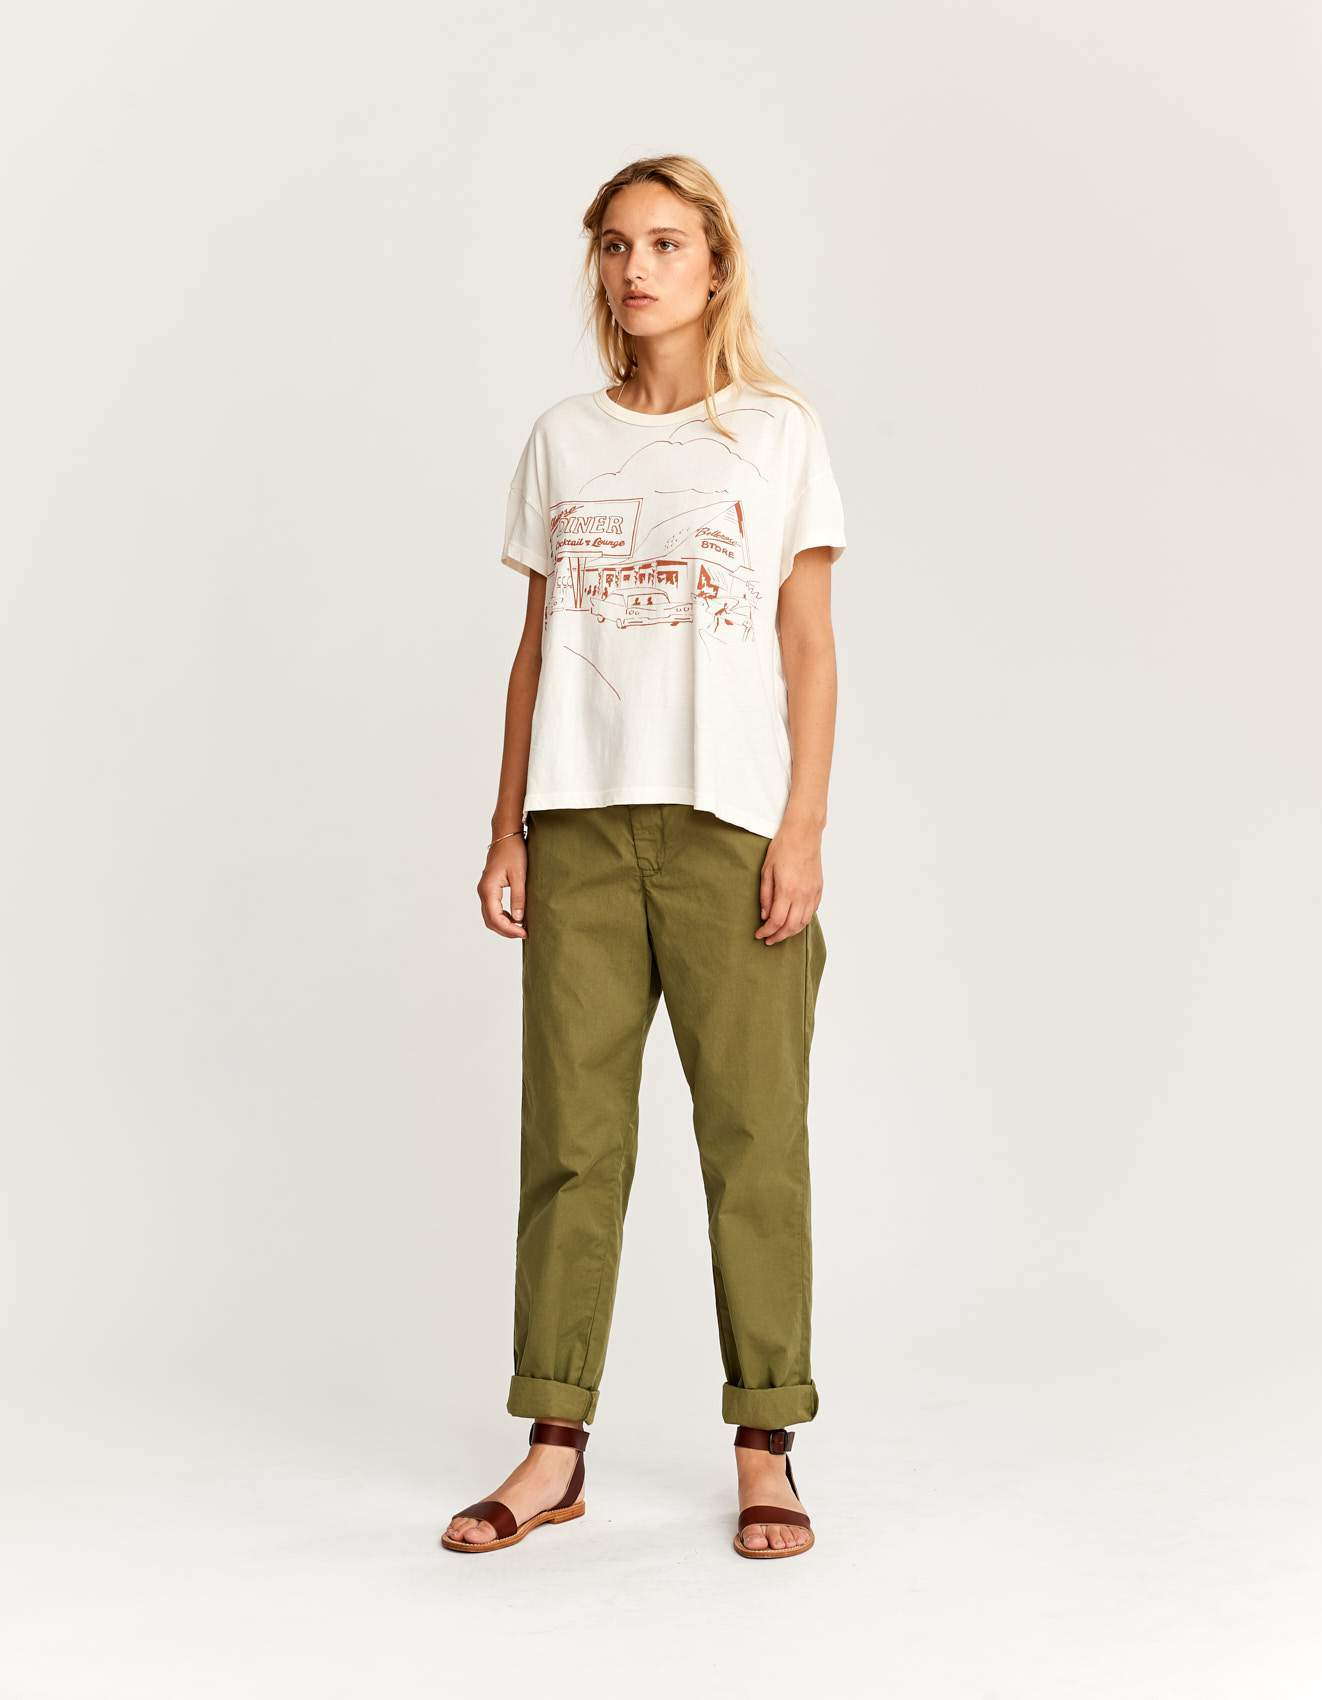 Bellerose loose white cotton t-shirt for women